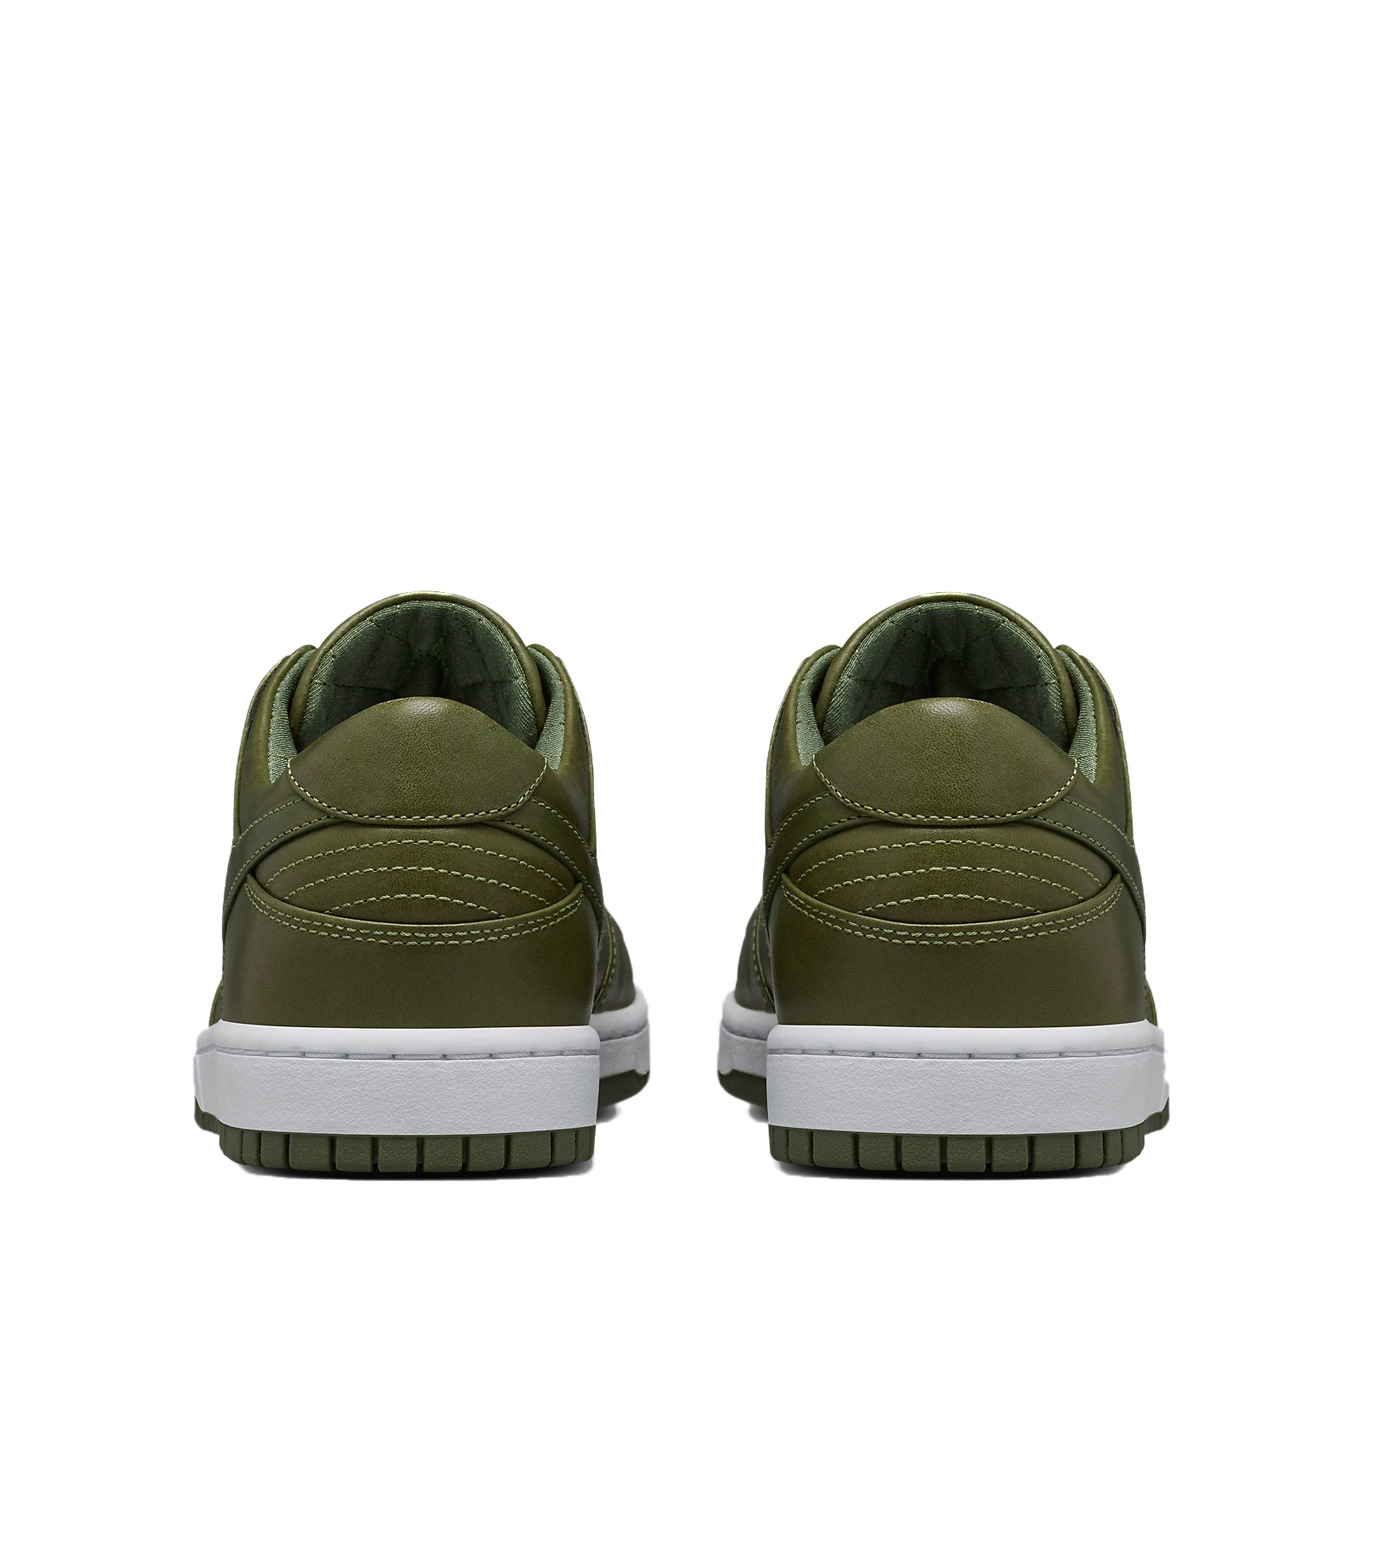 NIKE(ナイキ)のLAB DUNK LUX LOW-GRAY(シューズ/shoes)-857587-300-11 拡大詳細画像5